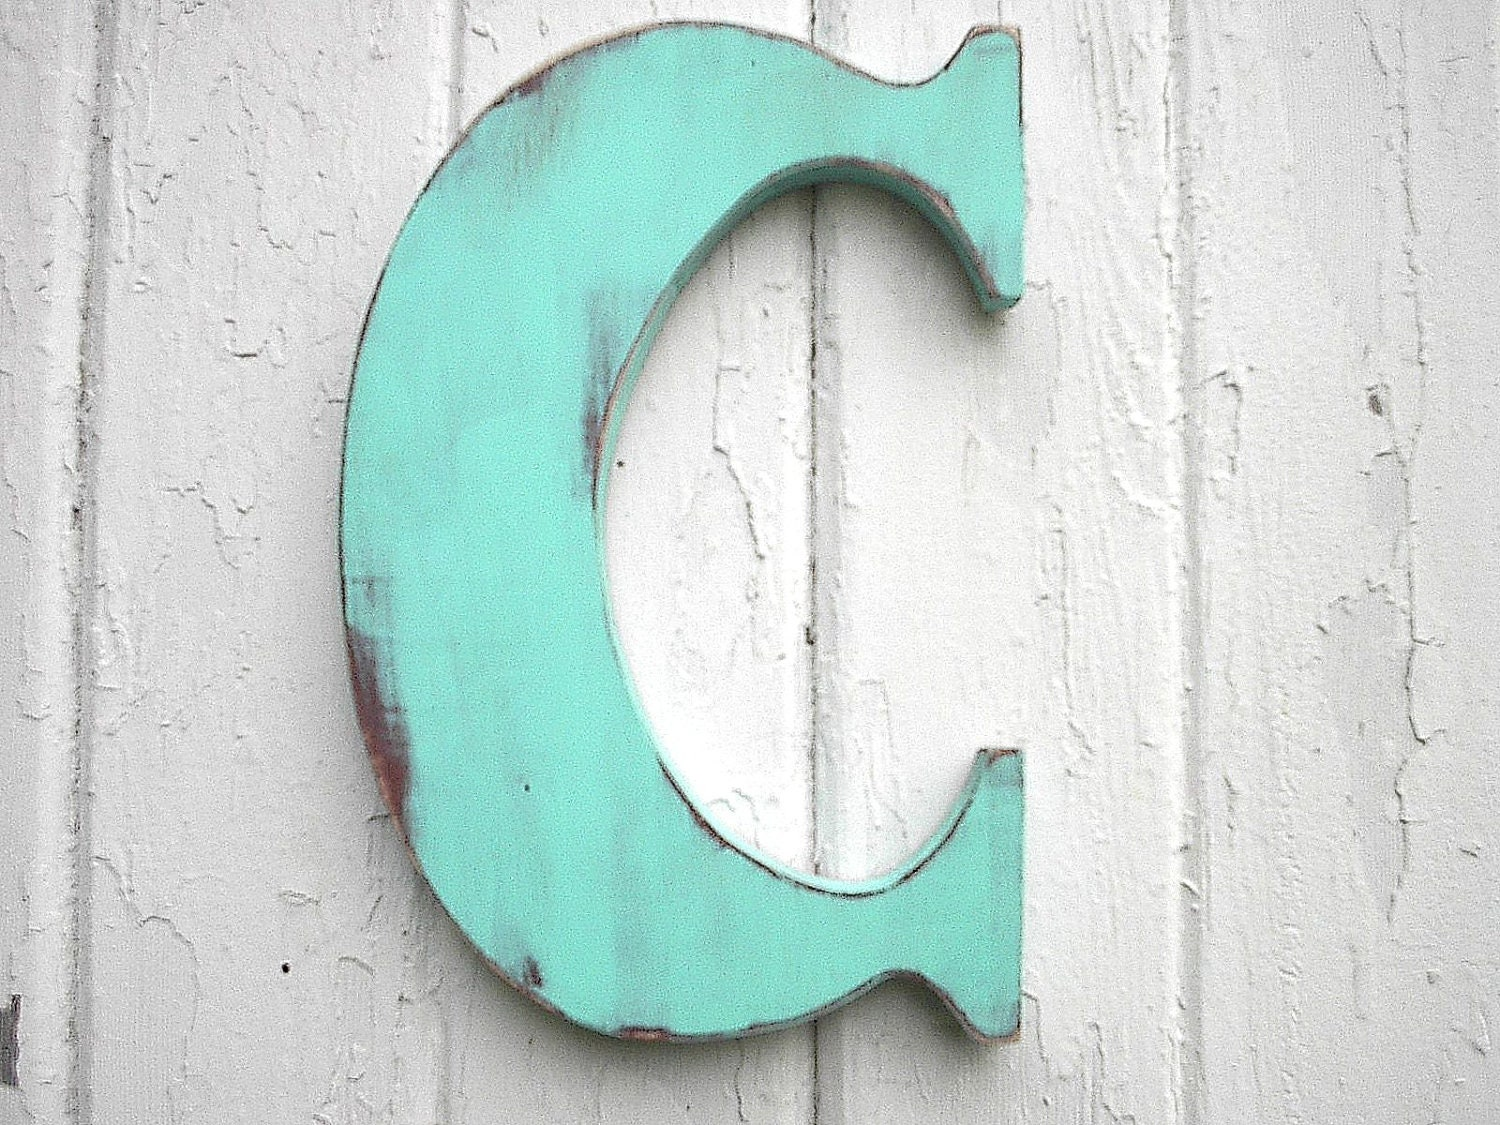 Wooden letters c 12 inch patina wall decor kids - Wood letter wall decor ...